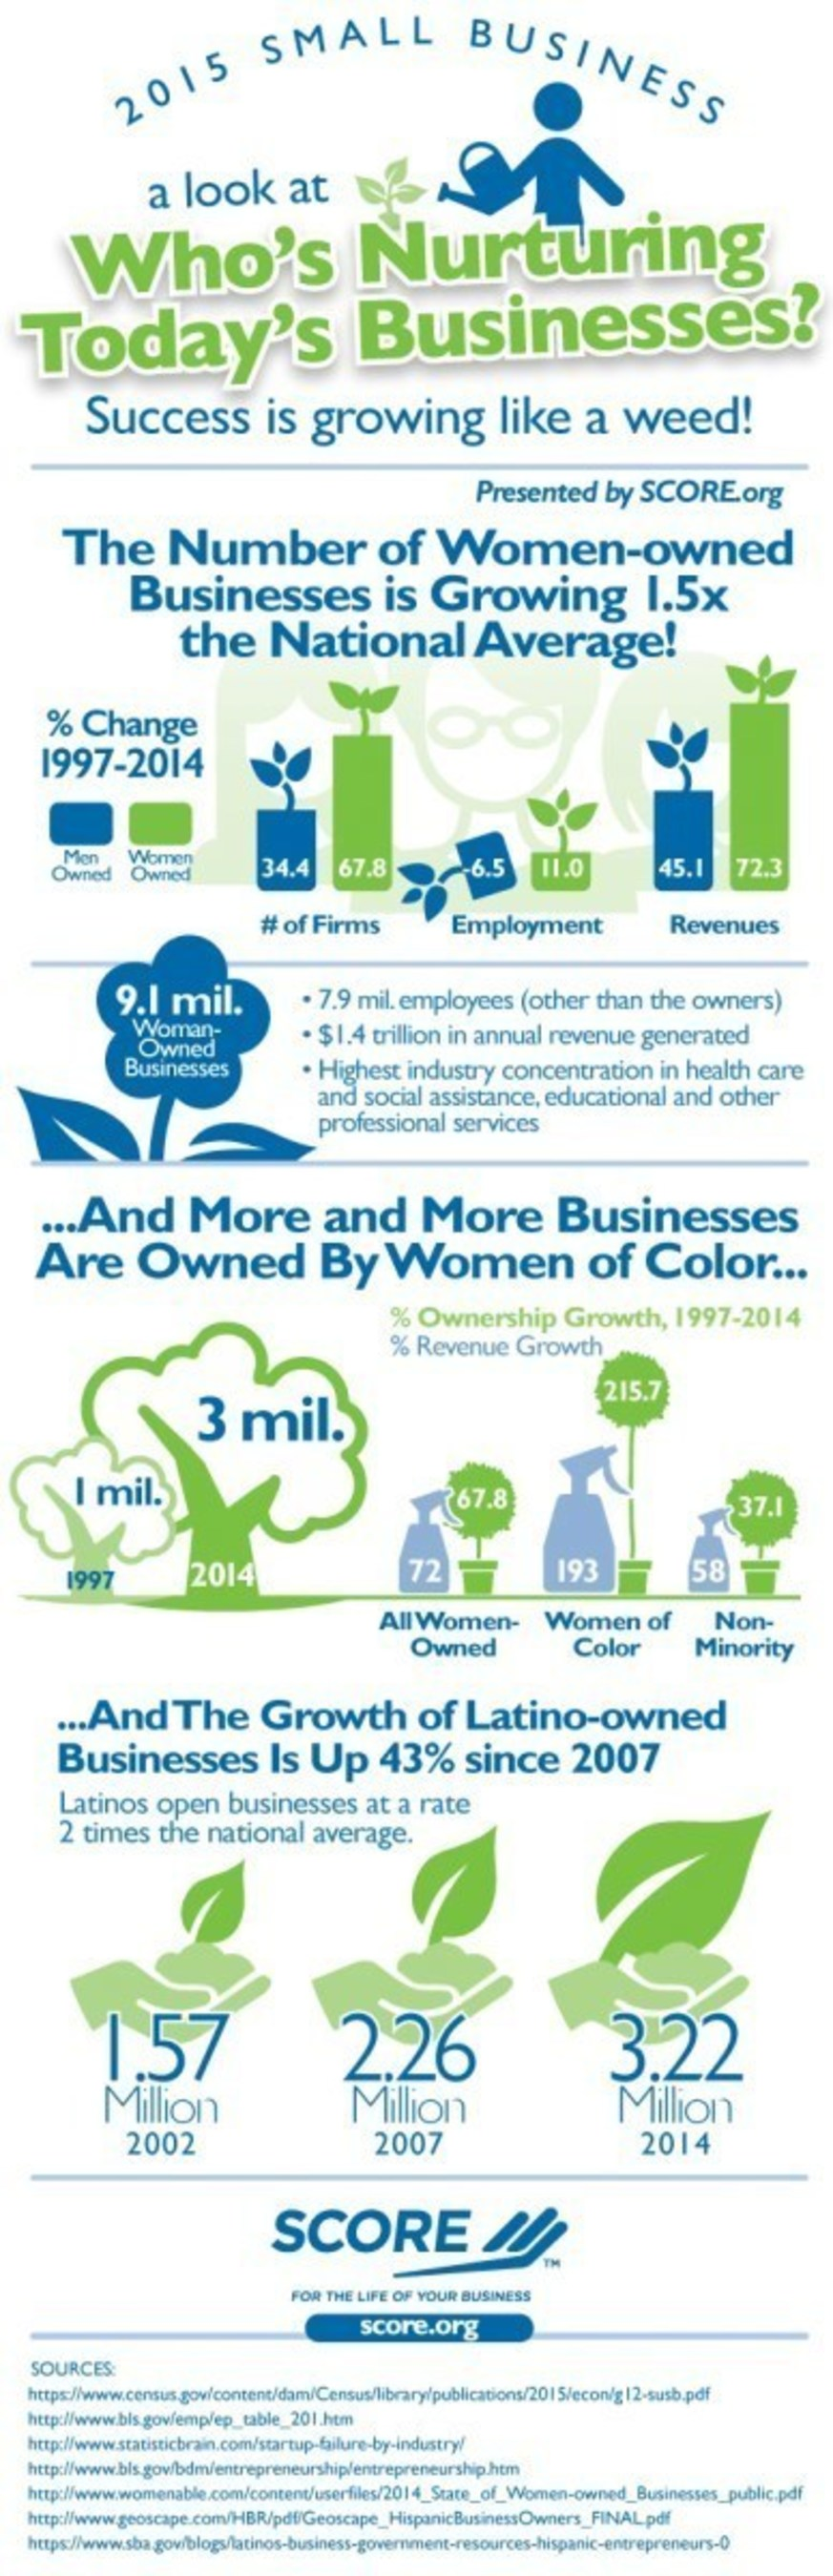 SCORE, - www.score.org - mentors to America's small businesses, has gathered statistics on the growth and economic impact of women-owned and minority-owned businesses in the United States. In total, there are currently 9.1 million women-owned businesses in the U.S. that employ 7.9 million people and generate $1.4 trillion in annual revenues. Since 1997, the number of women-owned firms in the U.S. has increased by 67.8% while the number of men-owned firms increased by 34.4%.